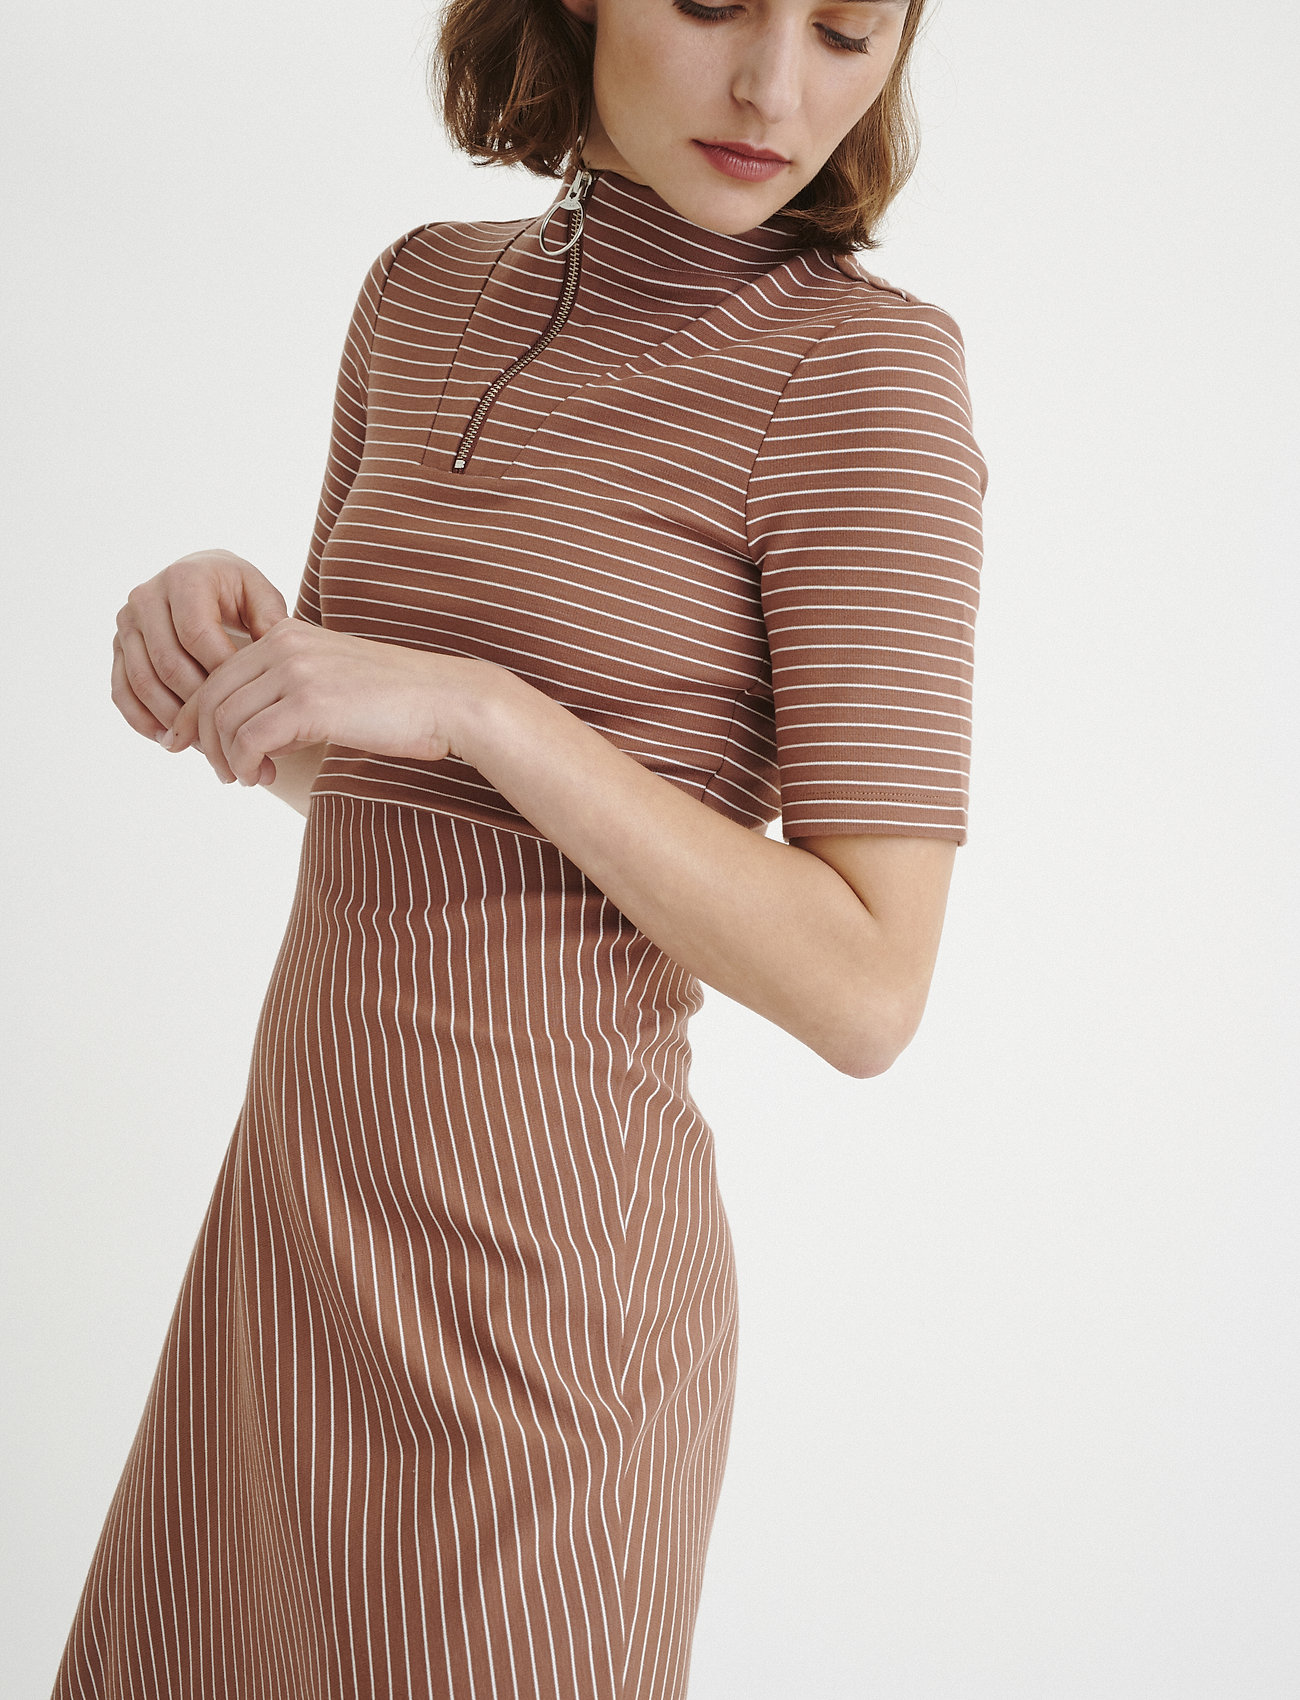 InWear AnnabelIW Dress - Kjoler CINNAMON / WHITE SMOKE STRIPE - Dameklær Spesialtilbud